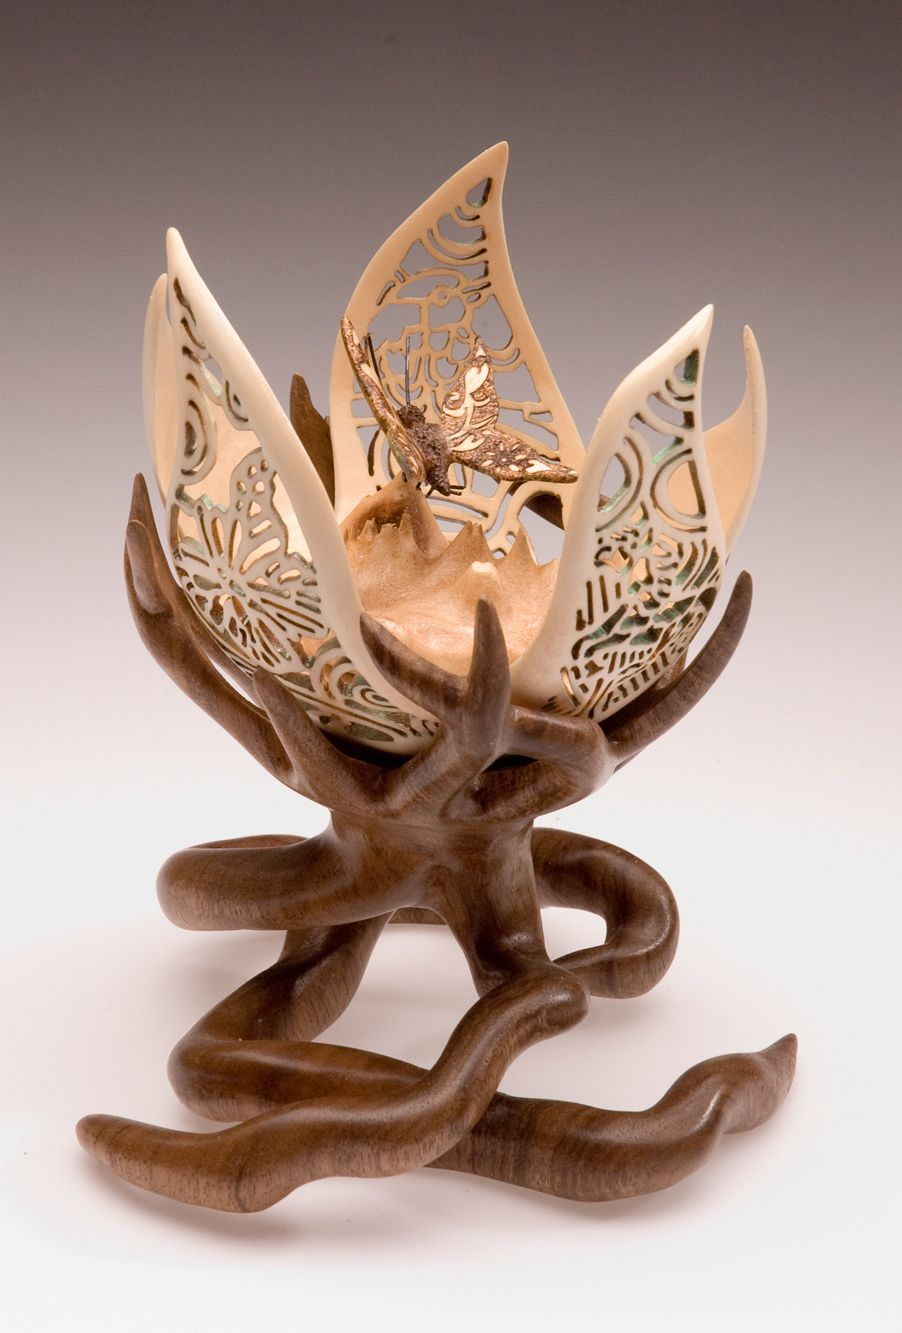 Infancy. Interesting combination of carved/polished wood and fretwork